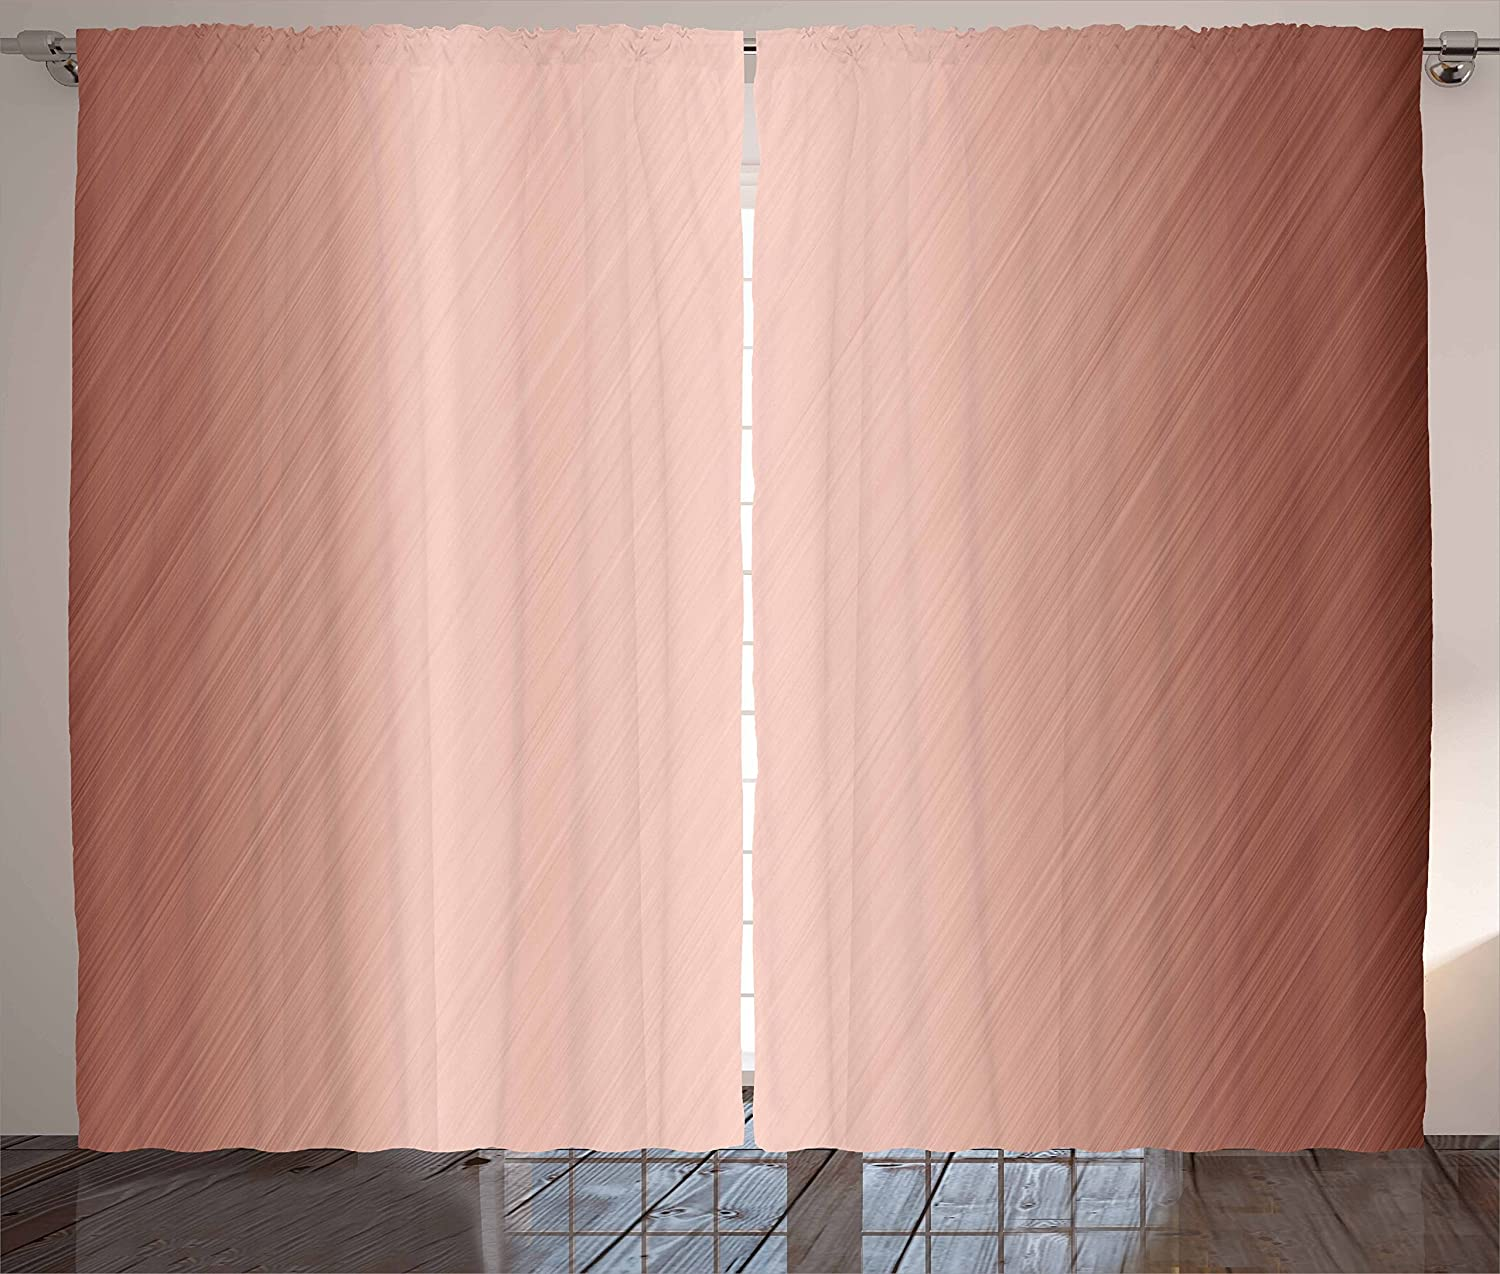 Ambesonne Abstract Curtains, Abstract Smooth Surface Image Diagonal Lines with Ombre Details, Living Room Bedroom Window Drapes 2 Panel Set, 108